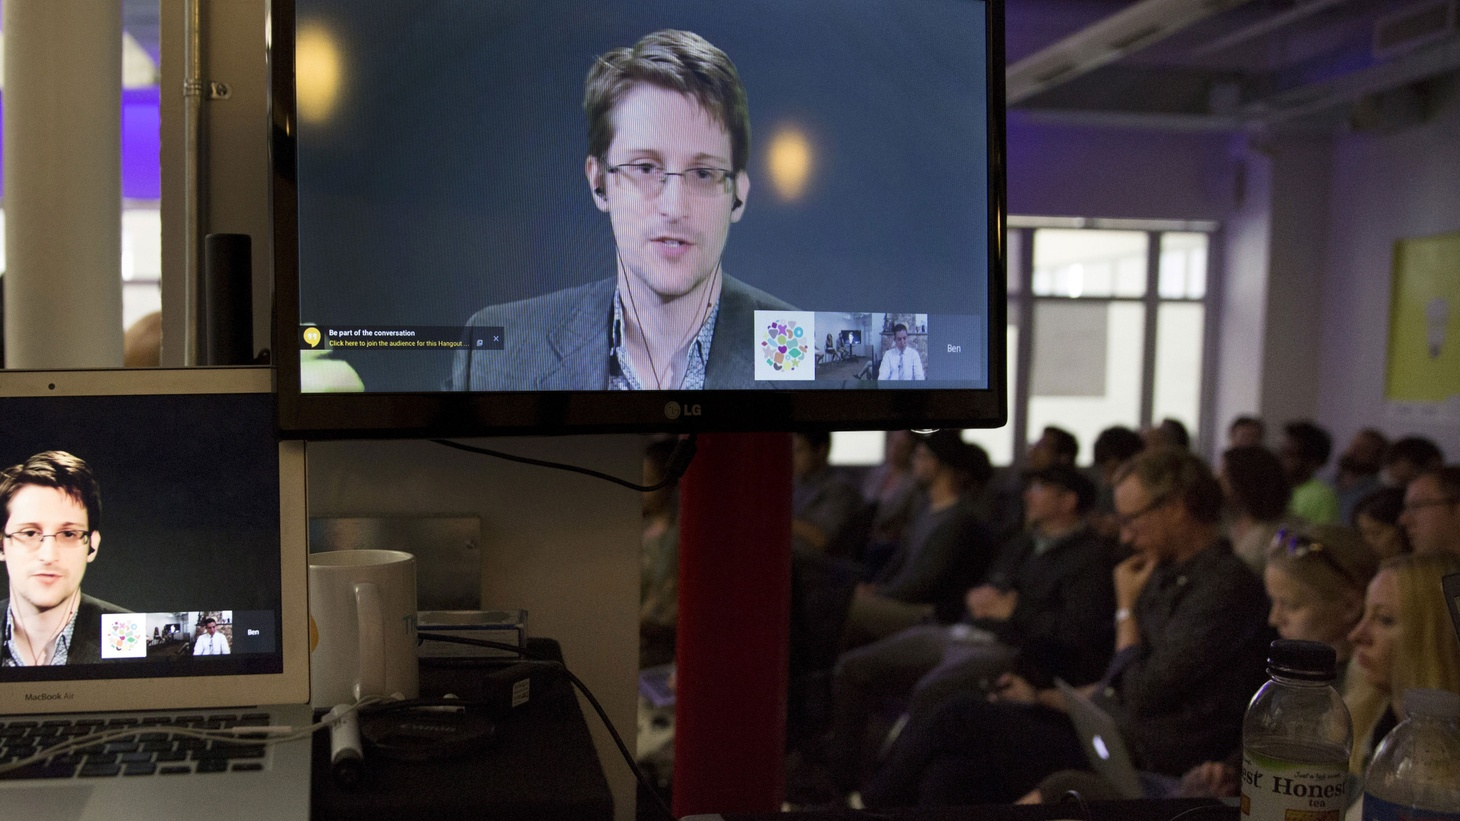 Bombs in New York and New Jersey and stabbings in Minnesota are raising familiar issues about national security. They might well influence ongoing debate about Edward Snowden. Did he perform public service by leaking classified information about intrusive surveillance, or is he a traitor who made Americans more vulnerable?